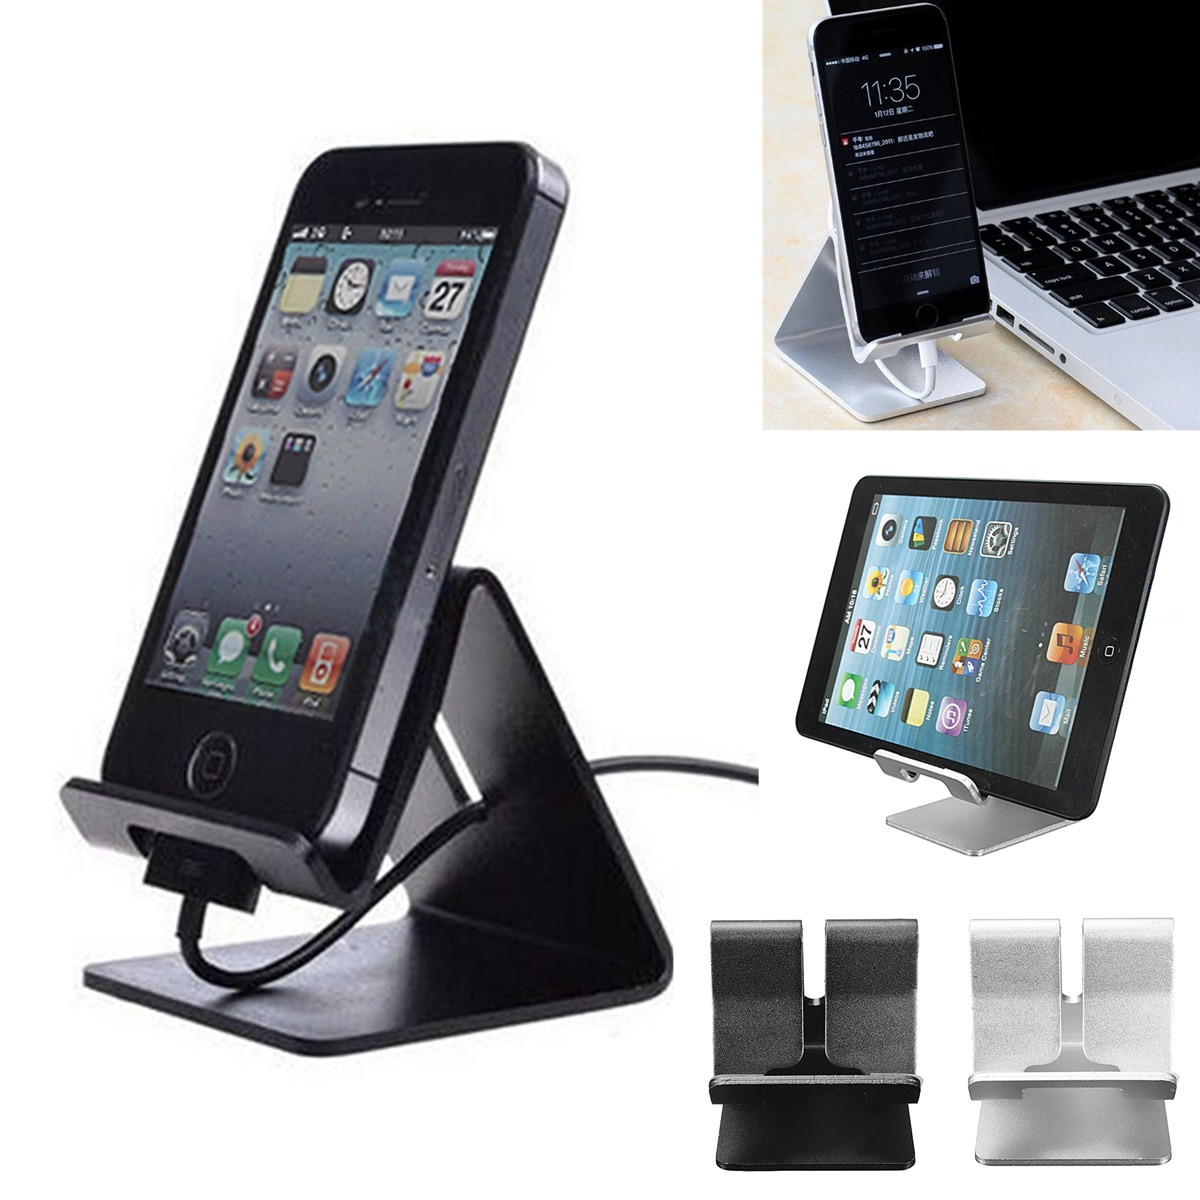 "M,way Universal Solid Aluminum Alloy Metal Mobile Phone Desktop Dock Stand Mount Holder Stander Cradle for iPhone Samsung LG HTC Sony and Other Smartphones & Most 7"" tablet ,Black color"